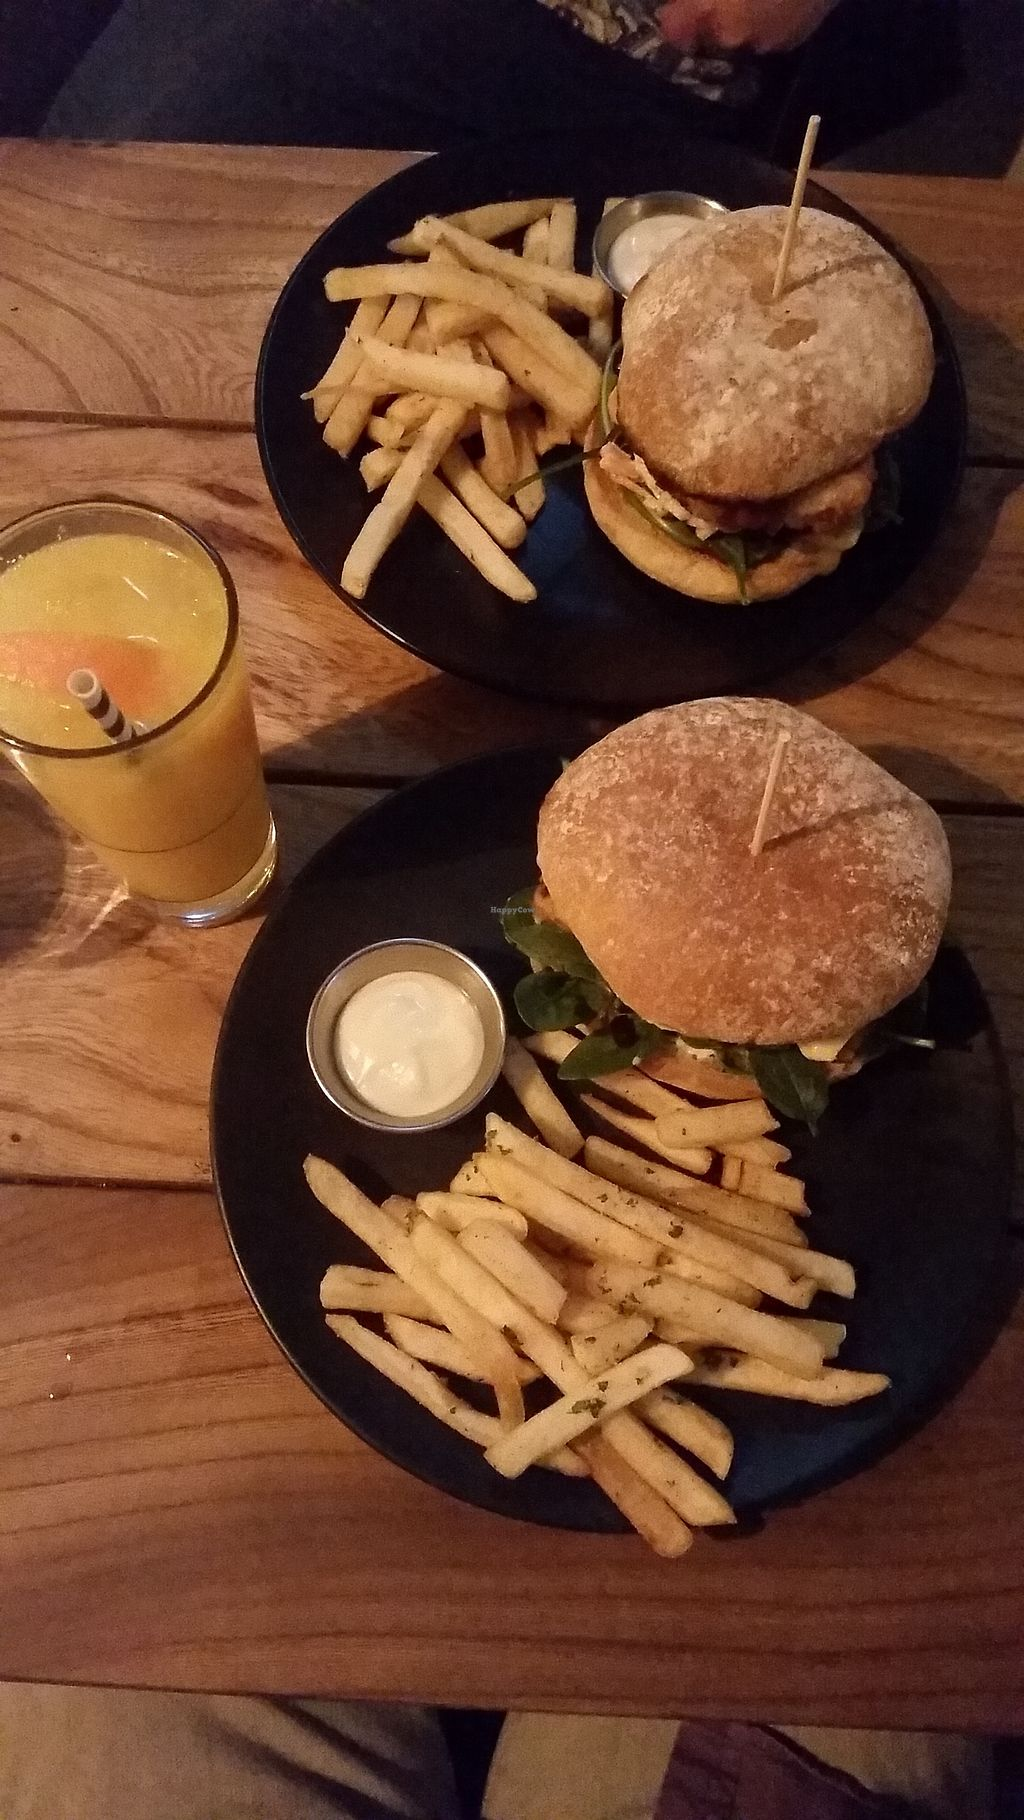 "Photo of The Botanist  by <a href=""/members/profile/AndyTheVWDude"">AndyTheVWDude</a> <br/>Great Burgers! The Native & The BFC <br/> September 5, 2017  - <a href='/contact/abuse/image/88498/300995'>Report</a>"